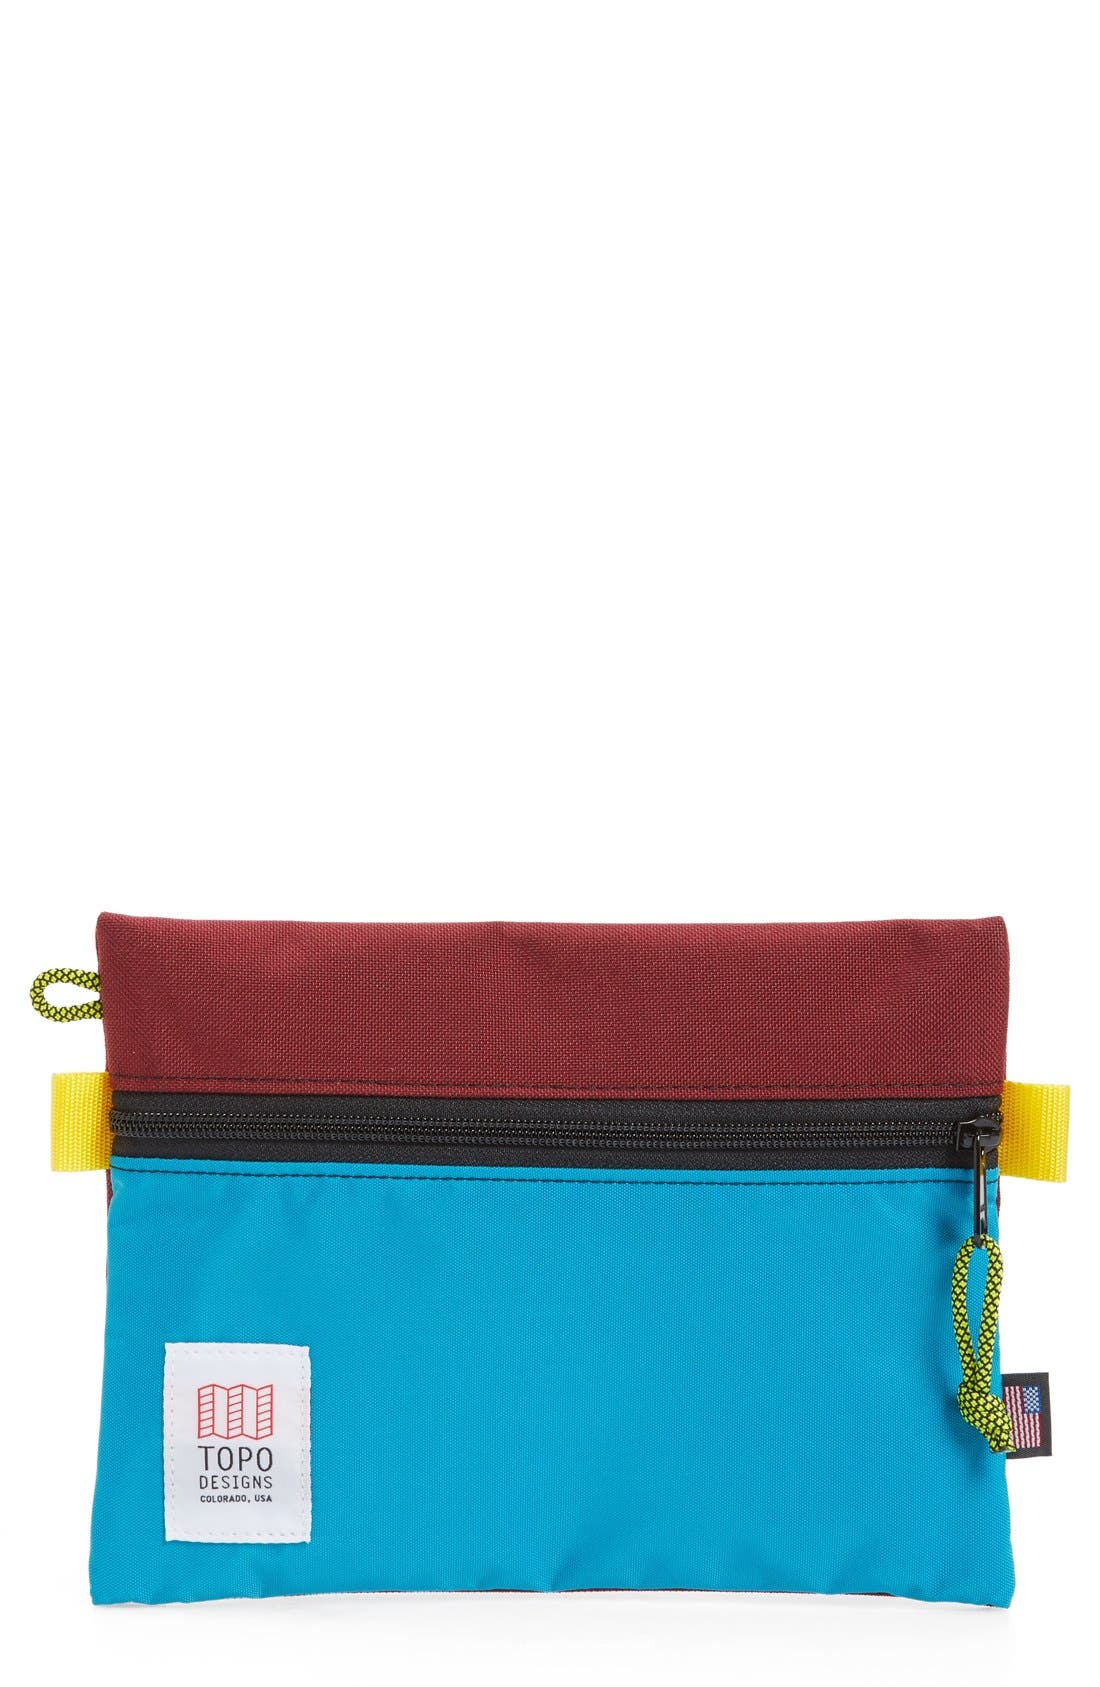 Topo Designs Accessory Bag,                             Main thumbnail 1, color,                             Burgundy/ Turquoise